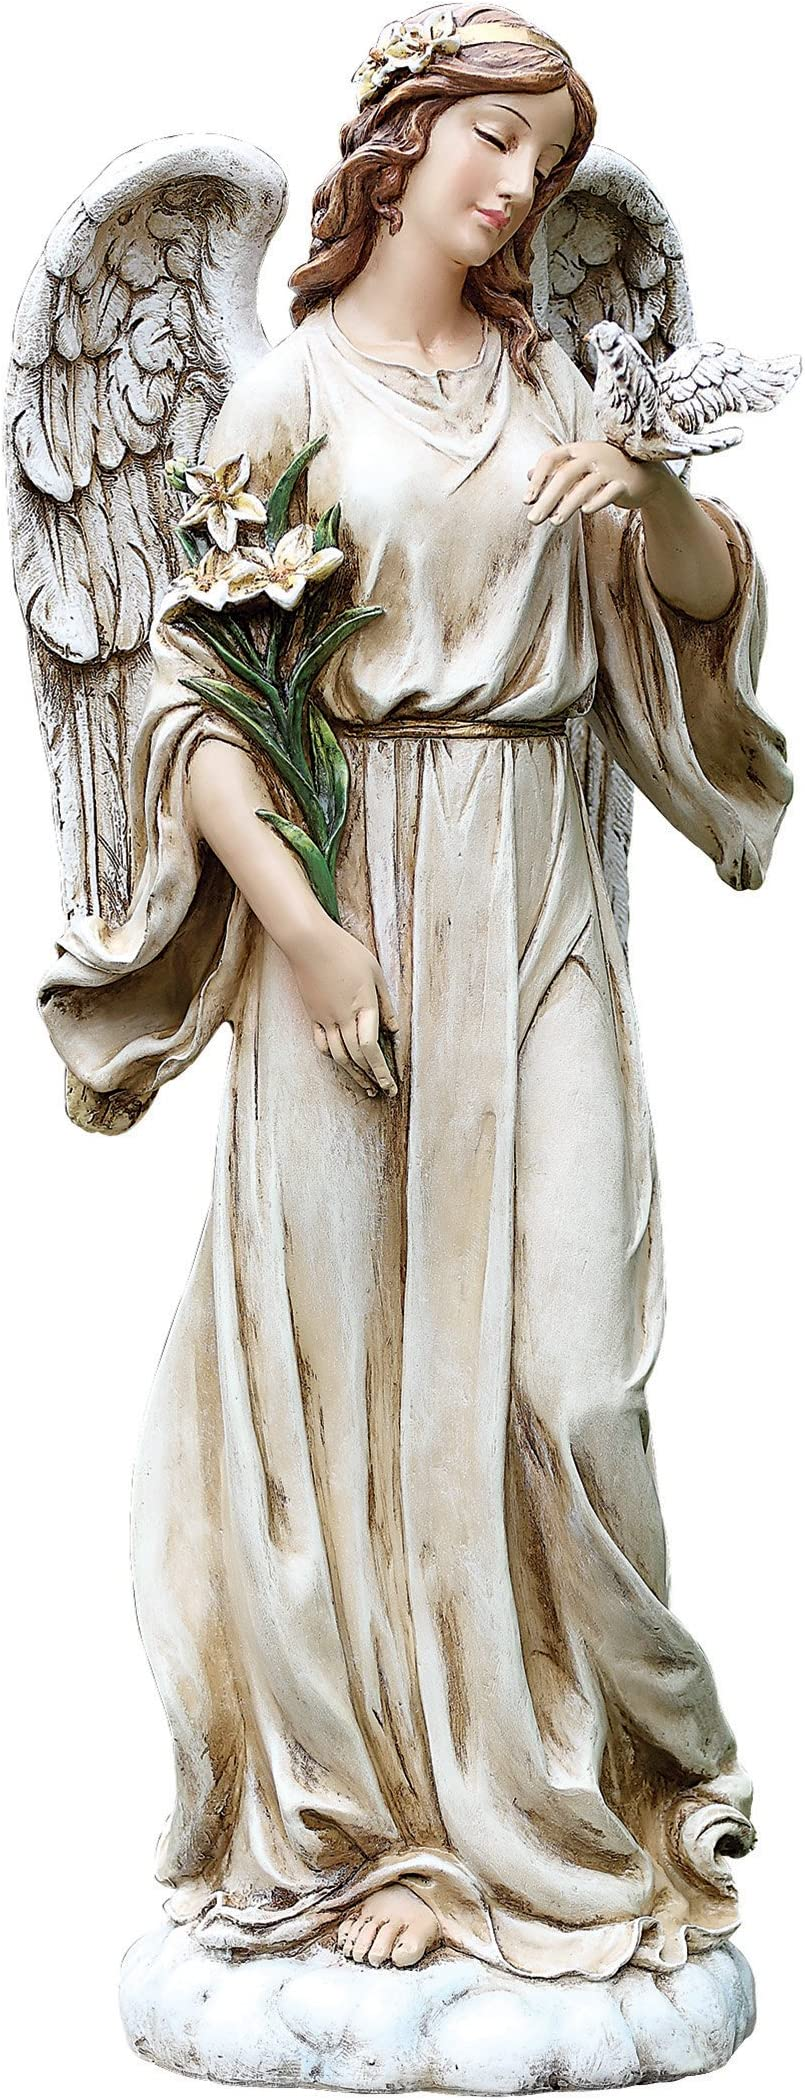 Joseph S Studio By Roman Angel With Dove Statue 24 5 H Garden Collection Resin And Stone Decorative Religious Gift Home Indoor And Outdoor Decor Durable Long Lasting Outdoor Statues Garden Outdoor